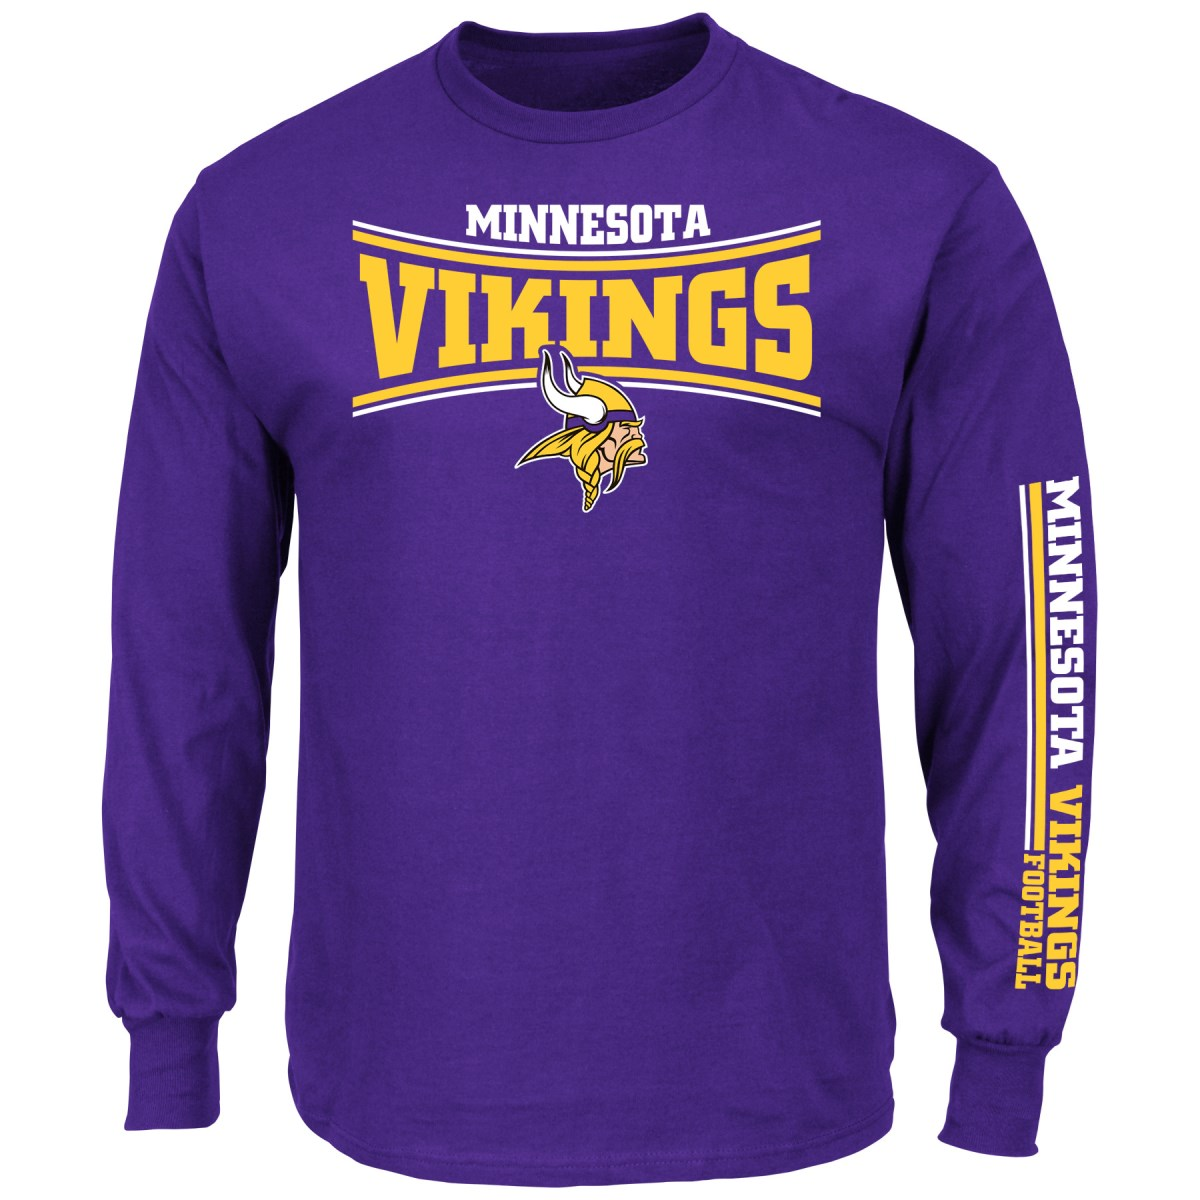 Minnesota Vikings Majestic NFL Primary Receiver Long Sleeve Men's T-Shirt by Majestic